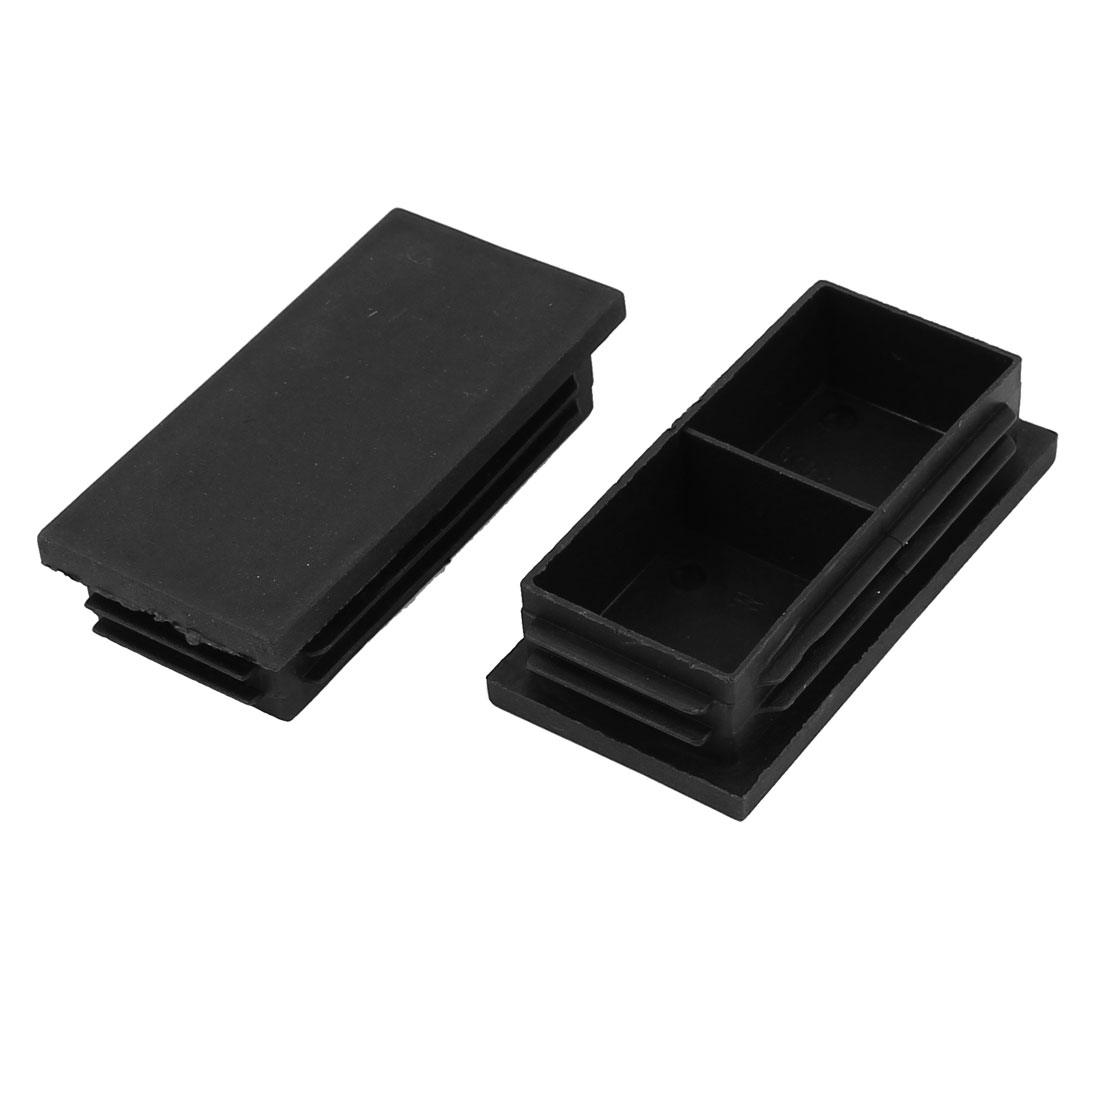 2 Pcs Black Plastic Rectangle Blanking End Caps Tubing Tube Pipe Inserts 40mm x 80mm